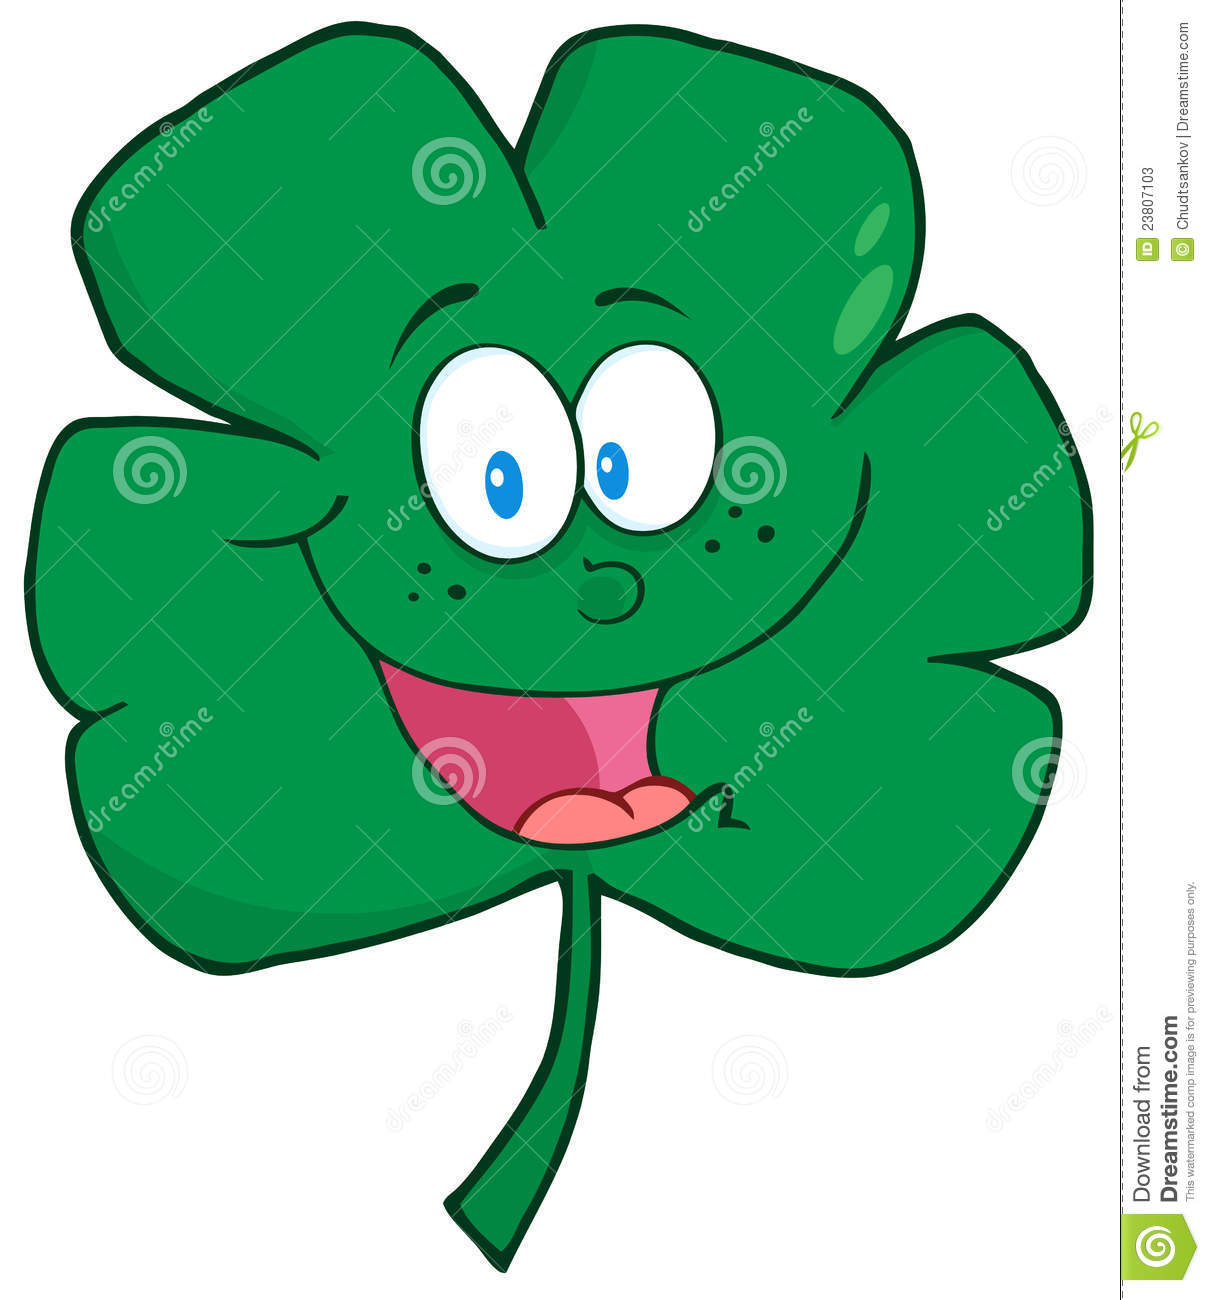 Cartoon Characters Green : Happy green clover cartoon character stock photos image